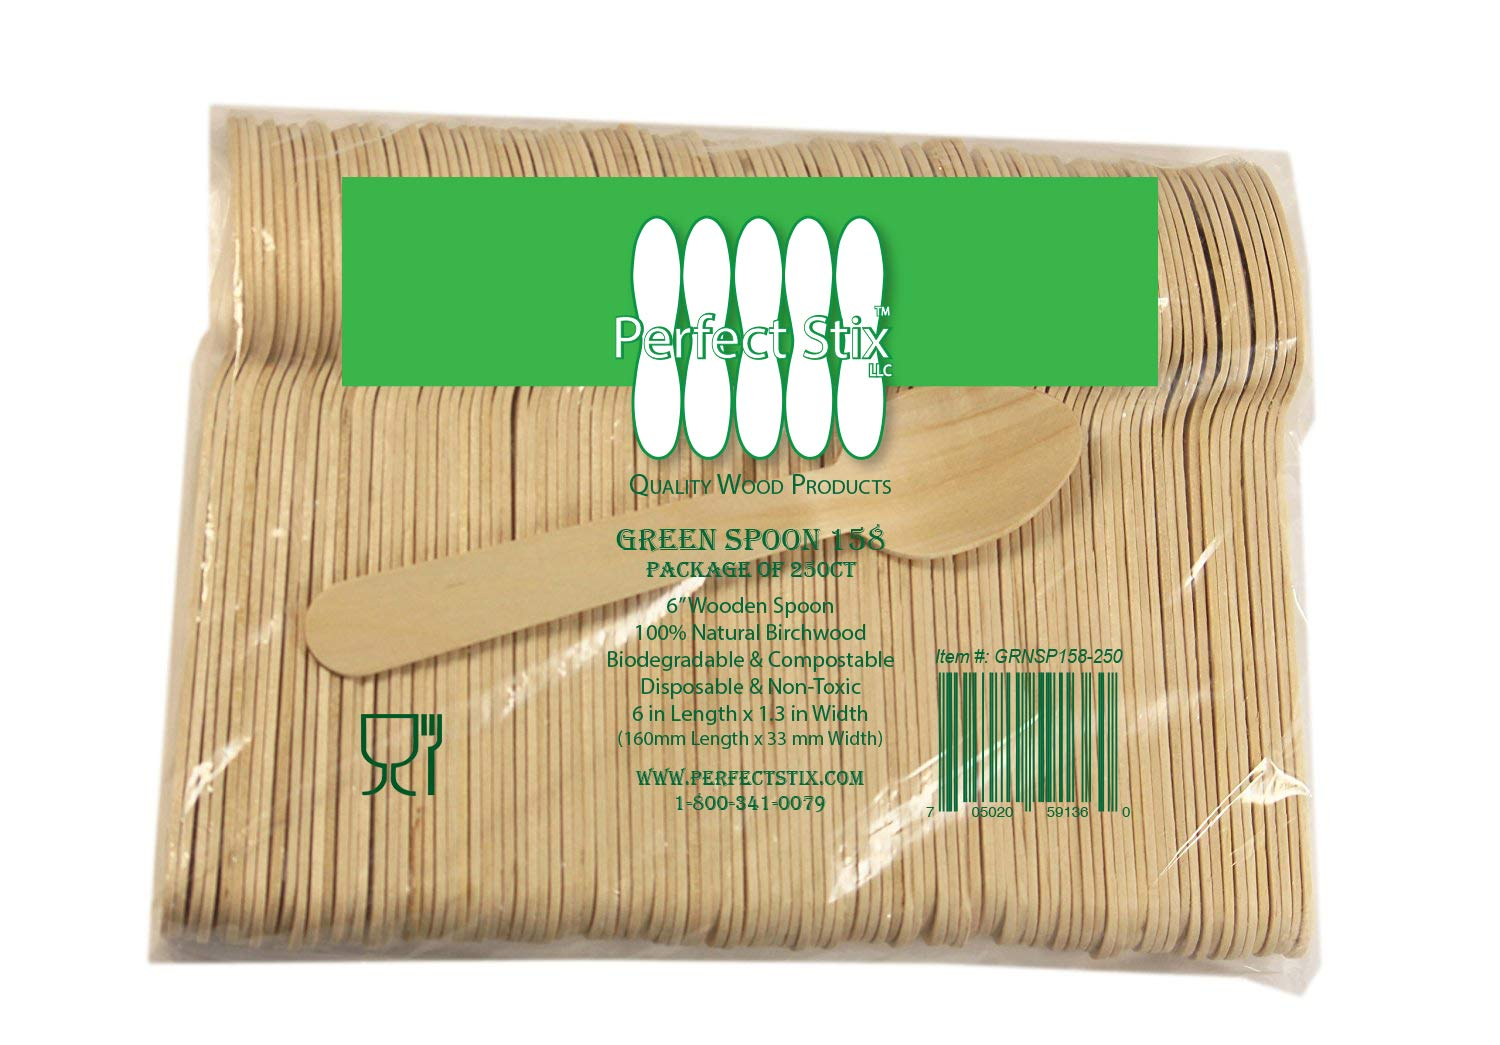 Perfect Stix Green Spoon 158-250 Wooden Disposable Spoons, 6'' Length (Pack of 250) by Perfect Stix